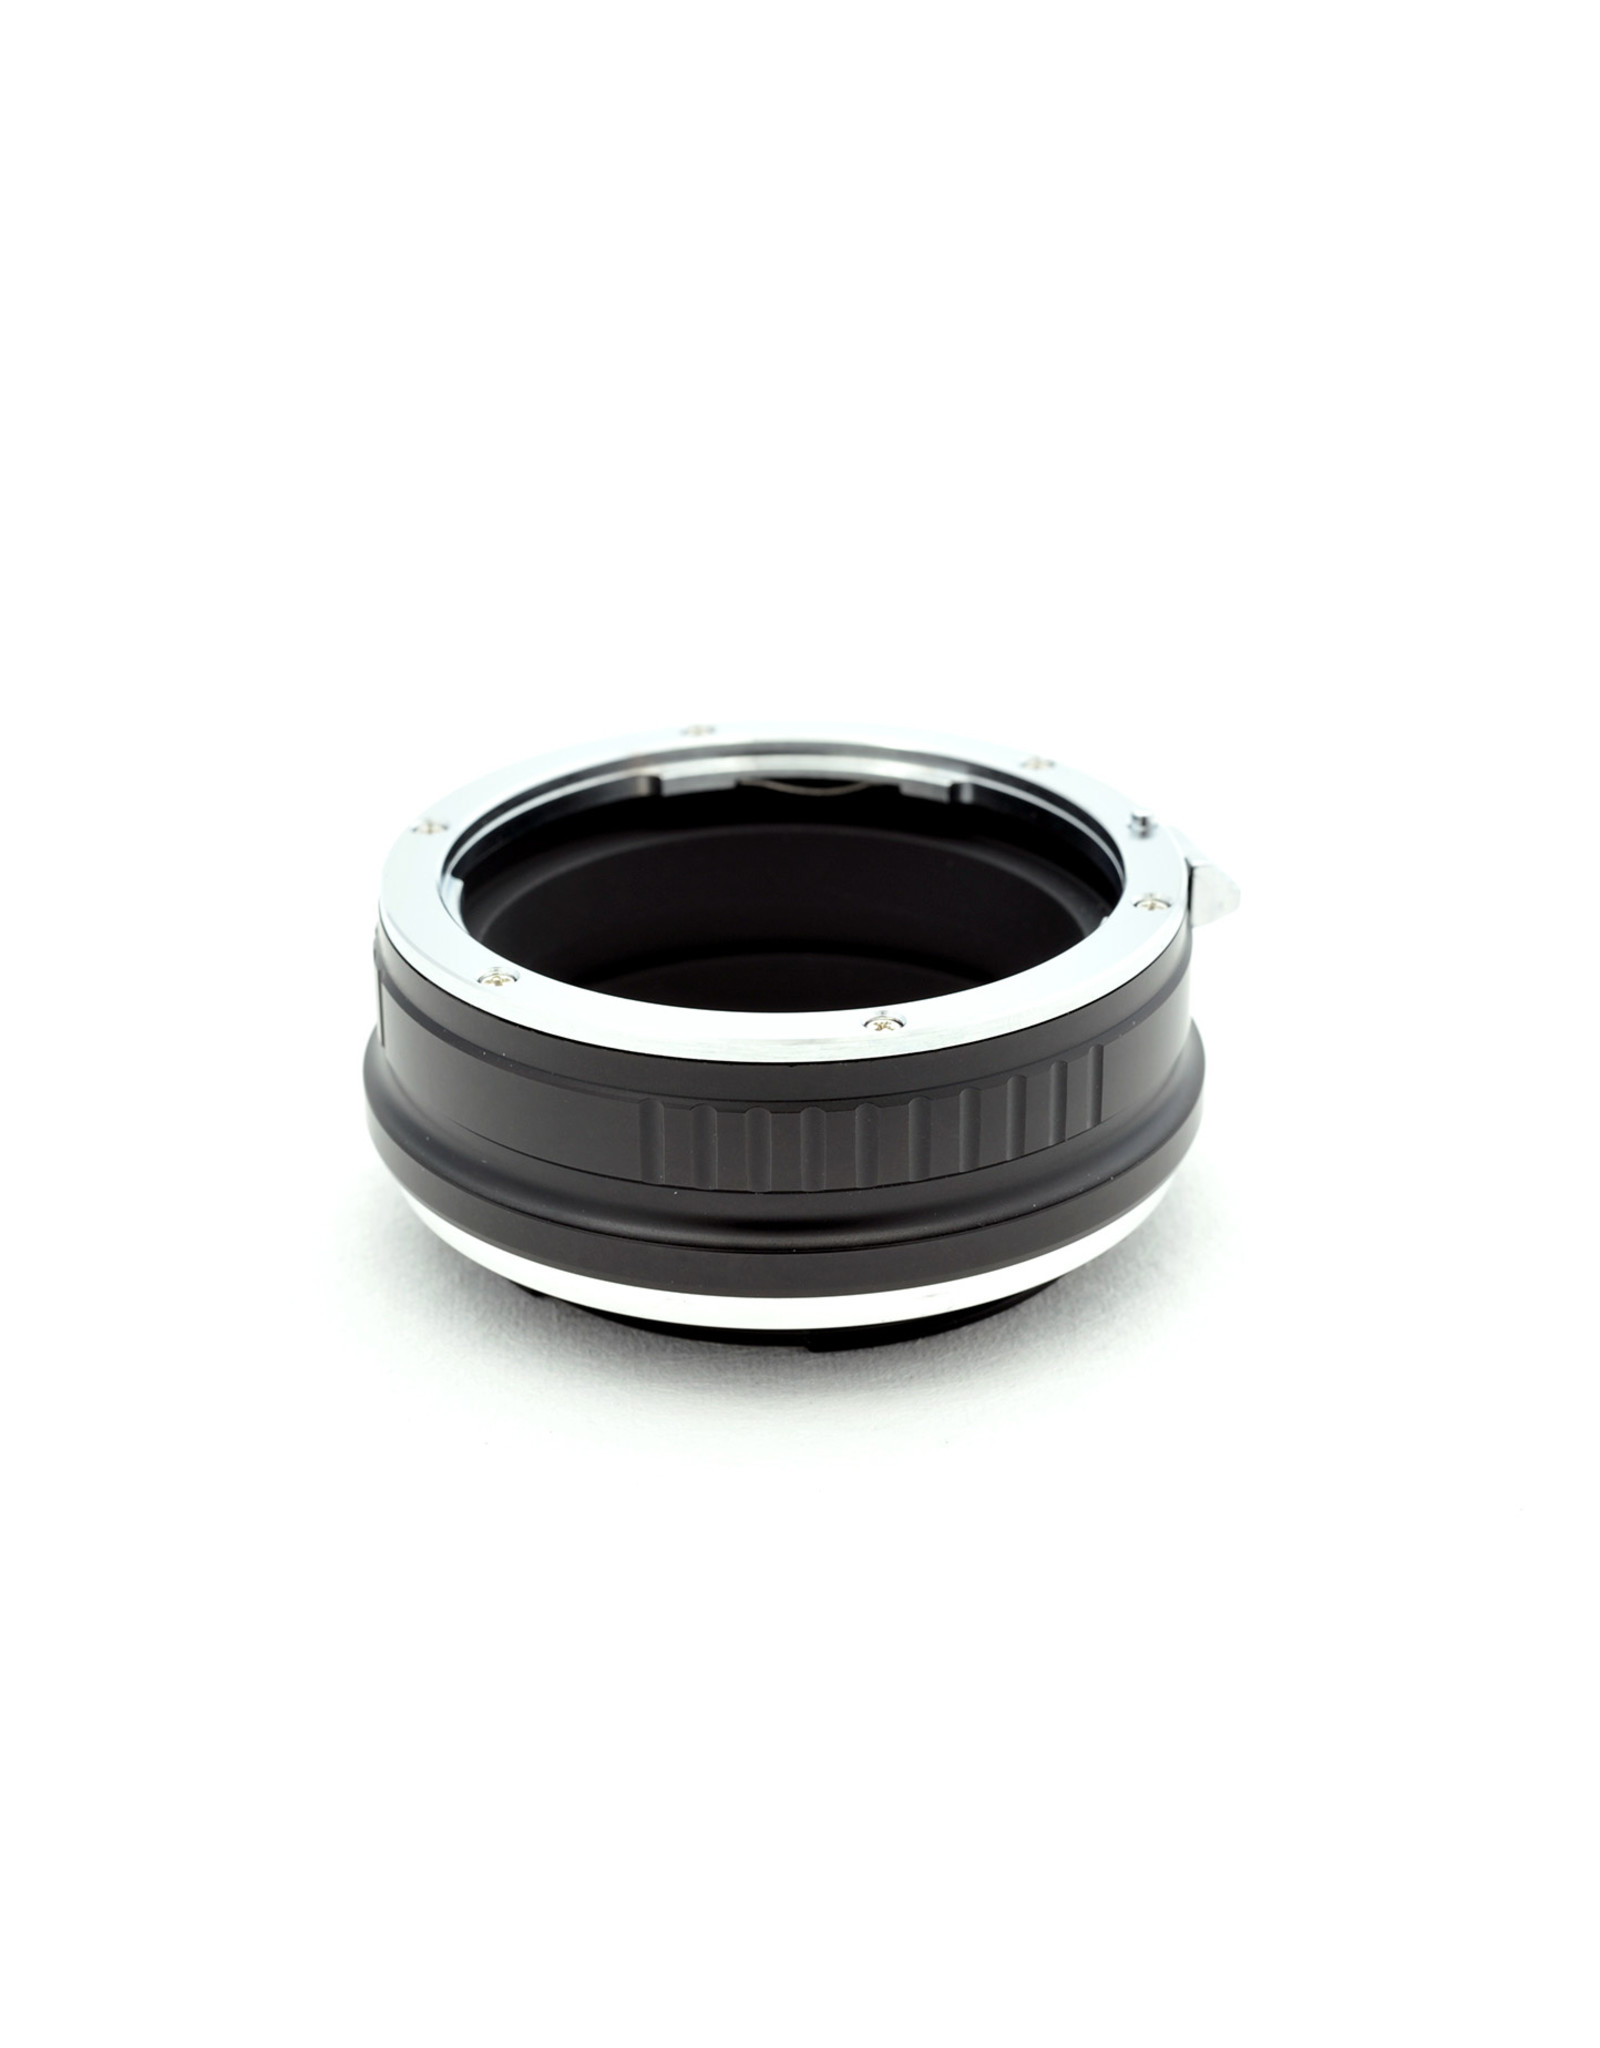 Fikoz Fikoz Canon EOS to EOS-R Mount Adapter   AP2121908